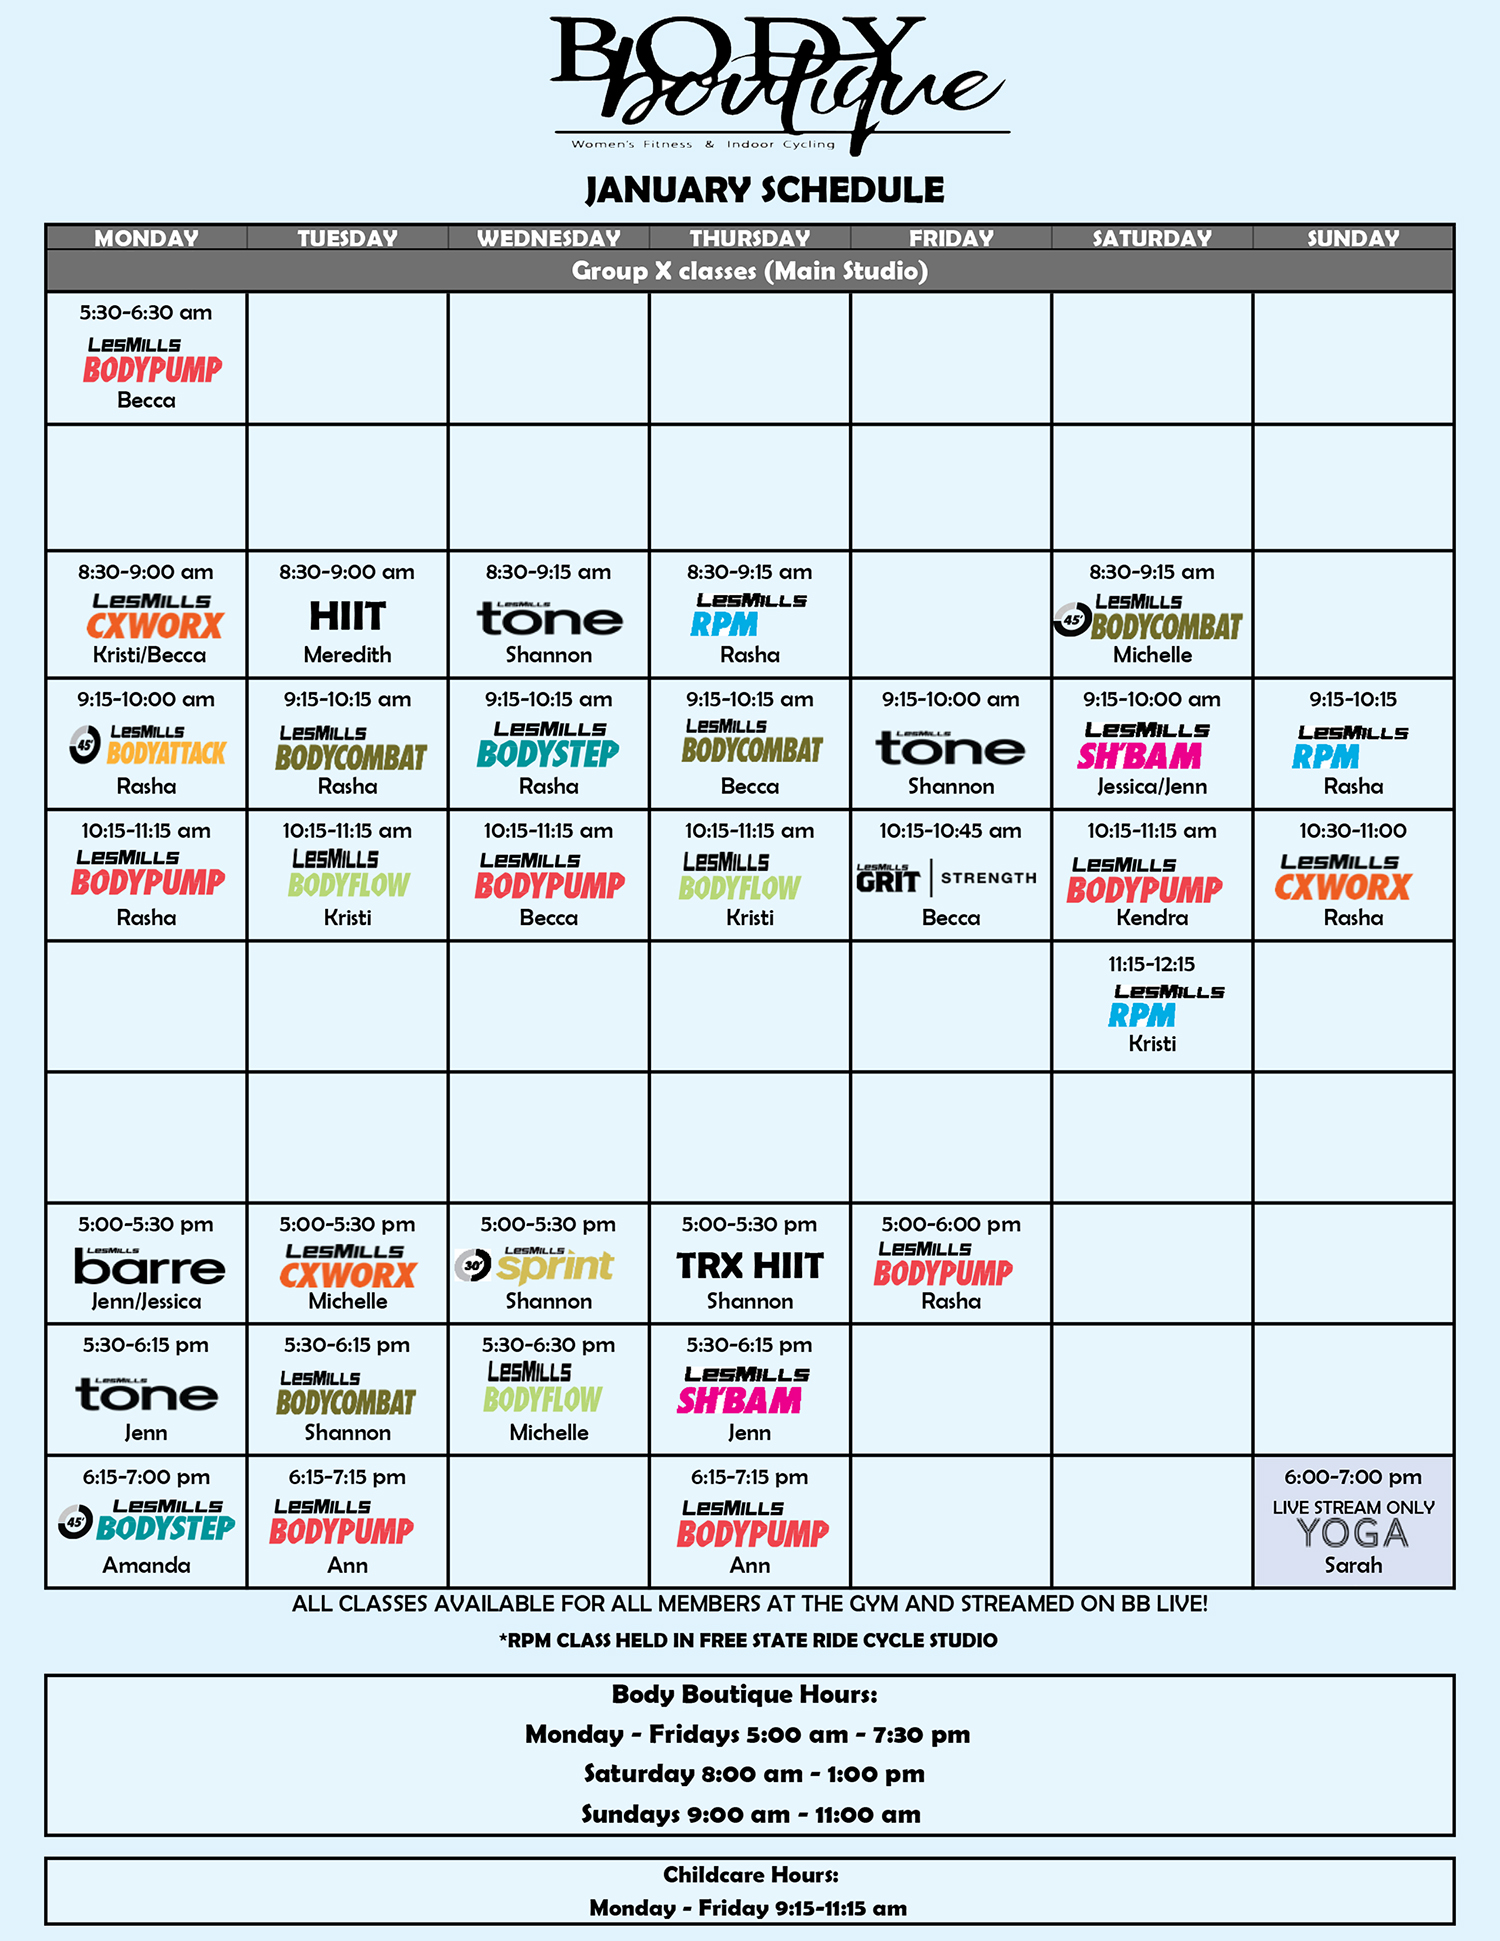 Group Fitness Live Stream Class Schedule